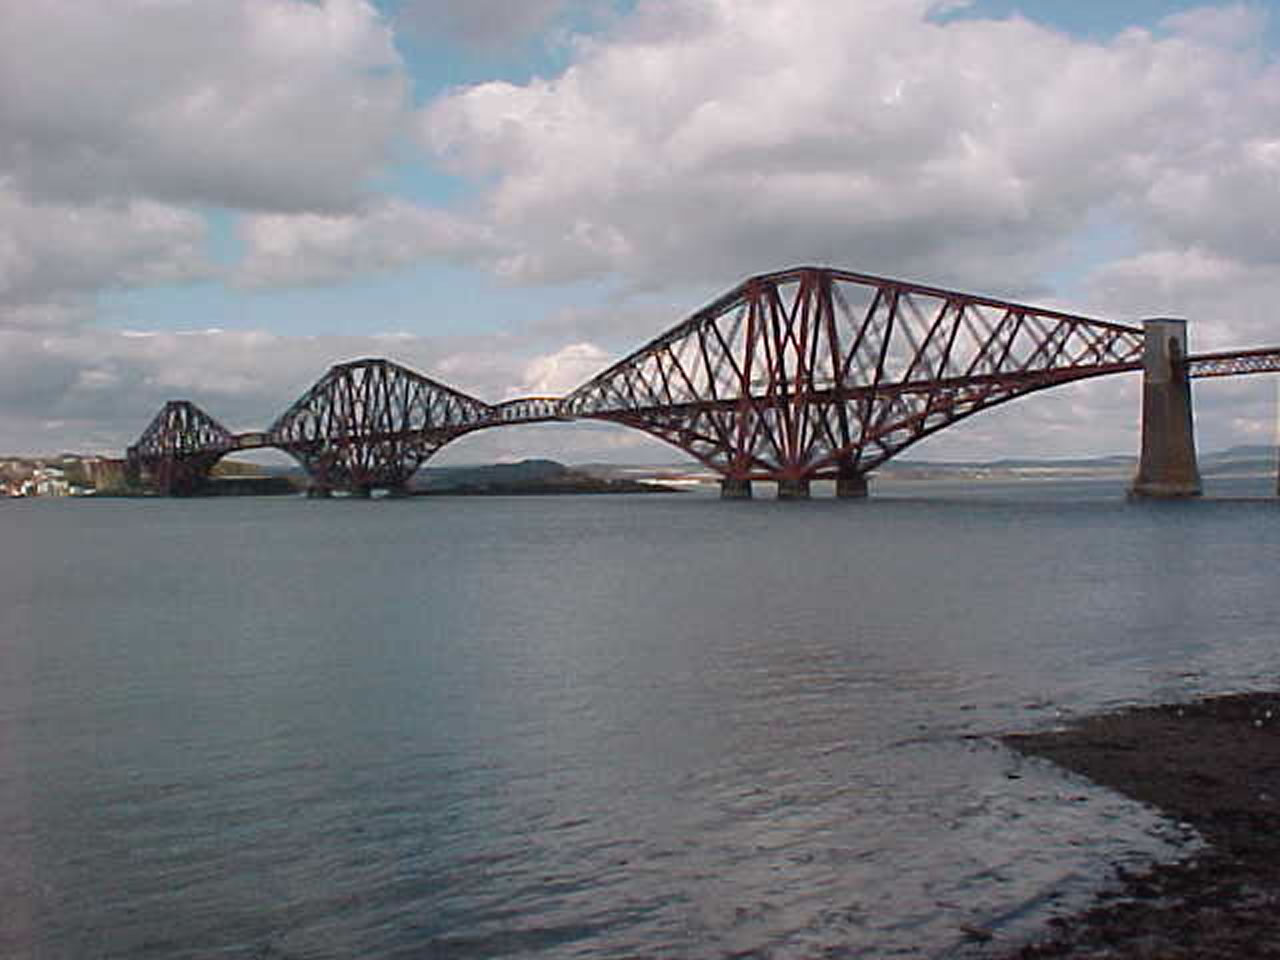 Some fact and figures about the forth rail bridge the bridge was